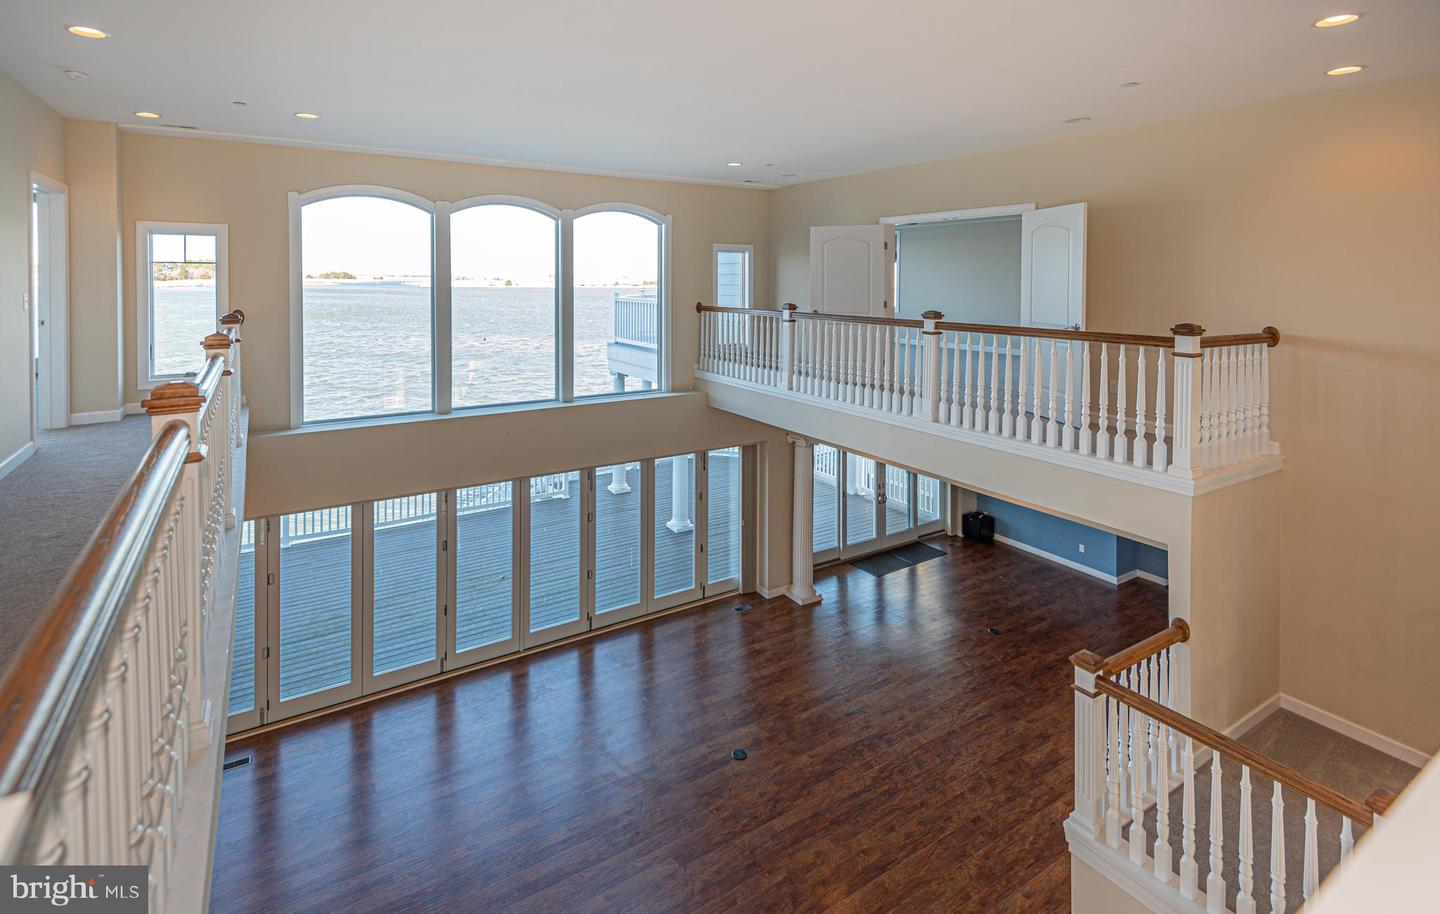 DESU154270-304005806036-2020-02-10-14-33-00 35 Inlet View | North Bethany, DE Real Estate For Sale | MLS# Desu154270  - Ocean Atlantic